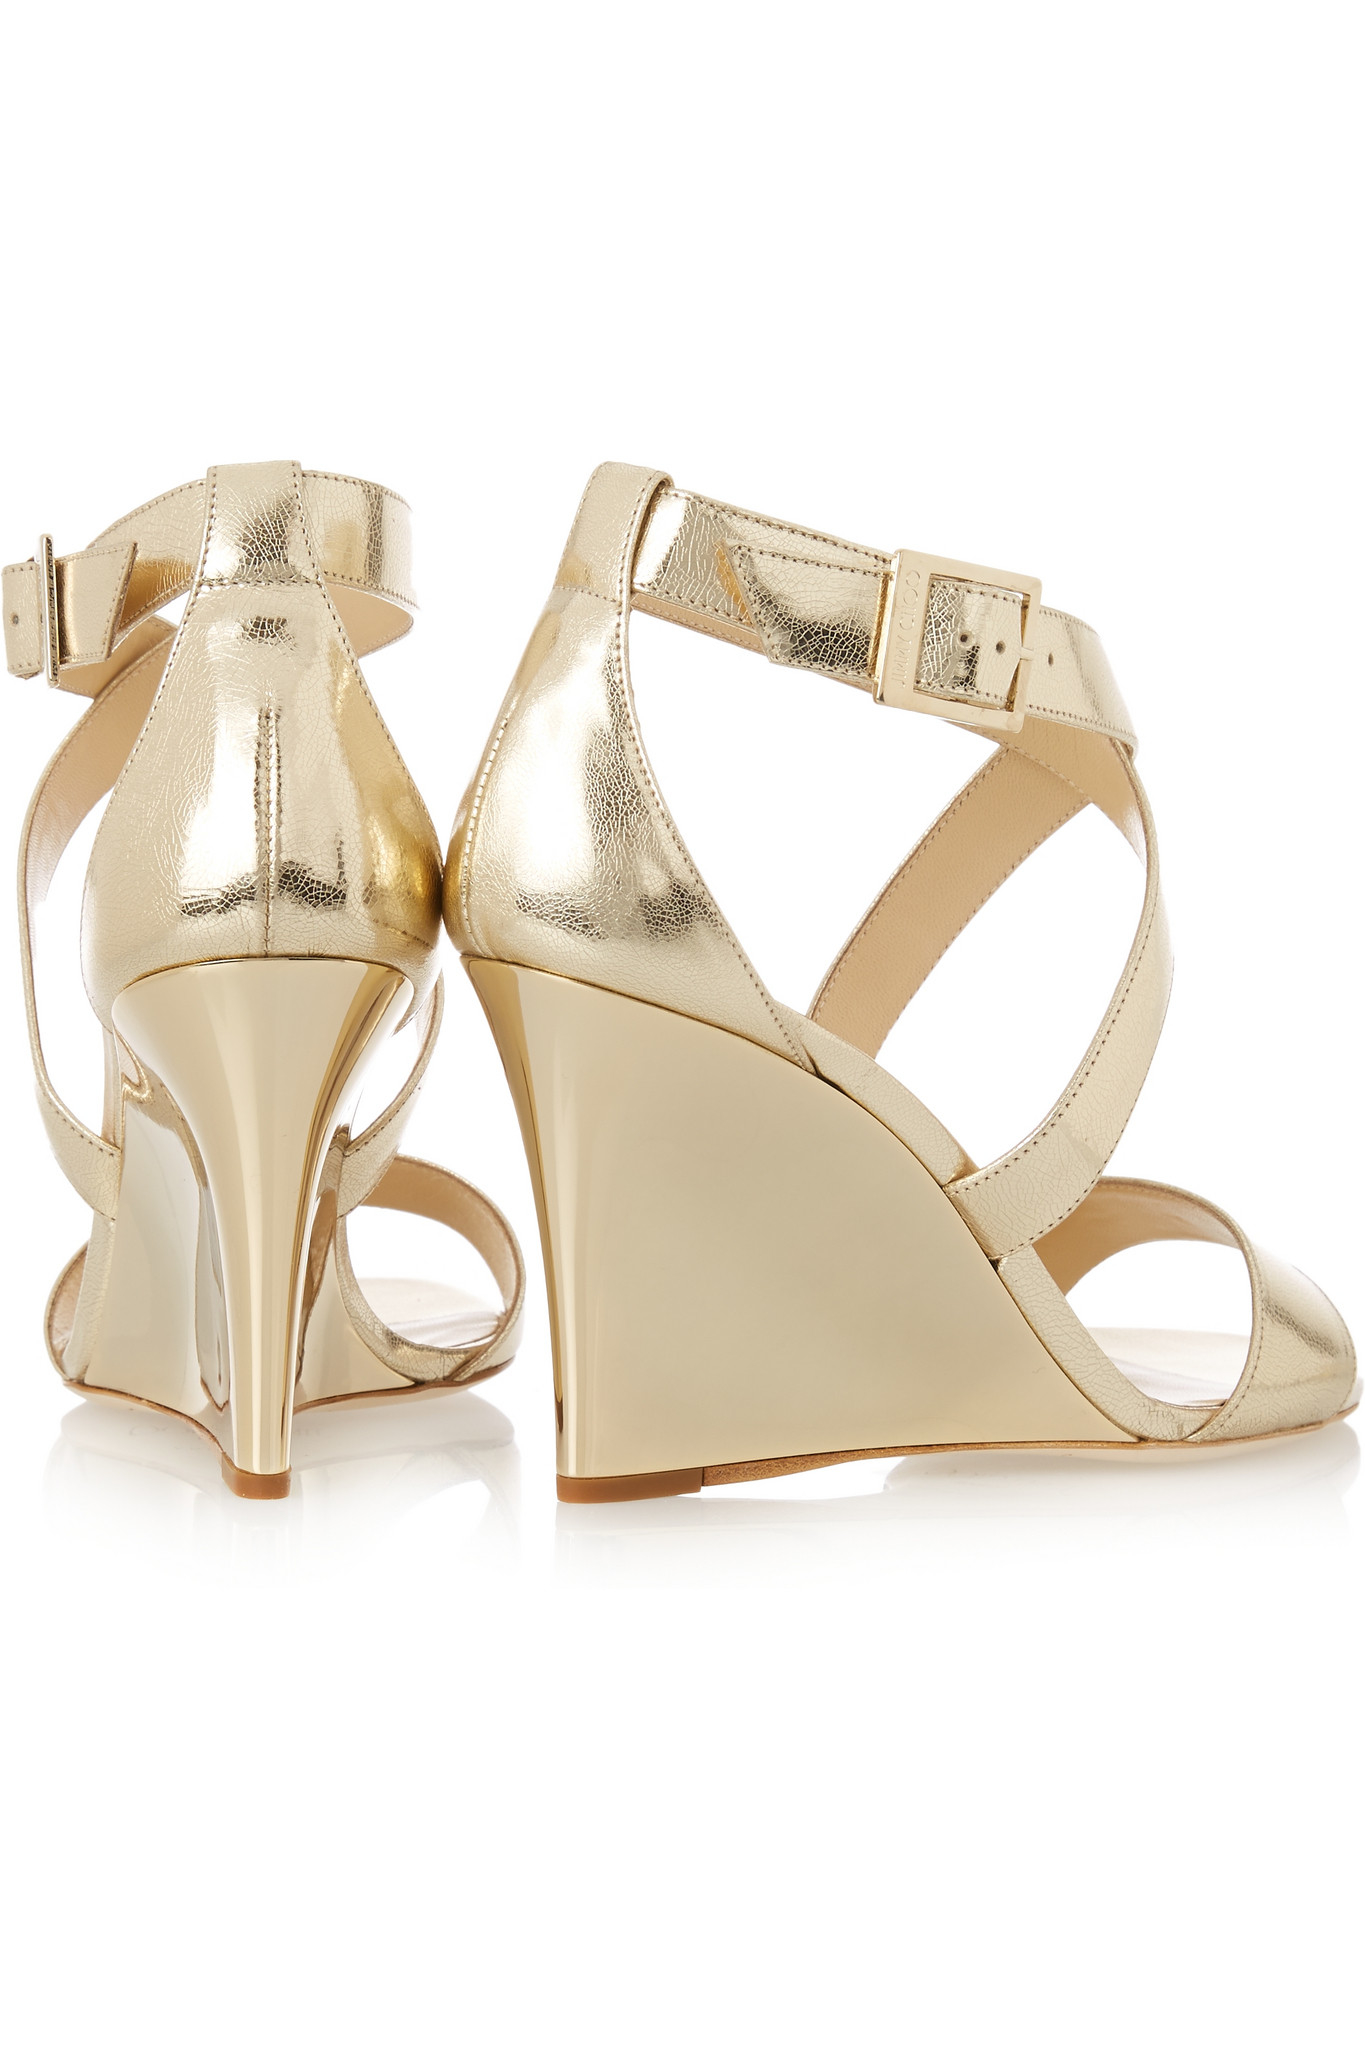 4b782d9f1041 ... czech jimmy choo fearne metallic textured leather wedge sandals in  56eeb 72dcb